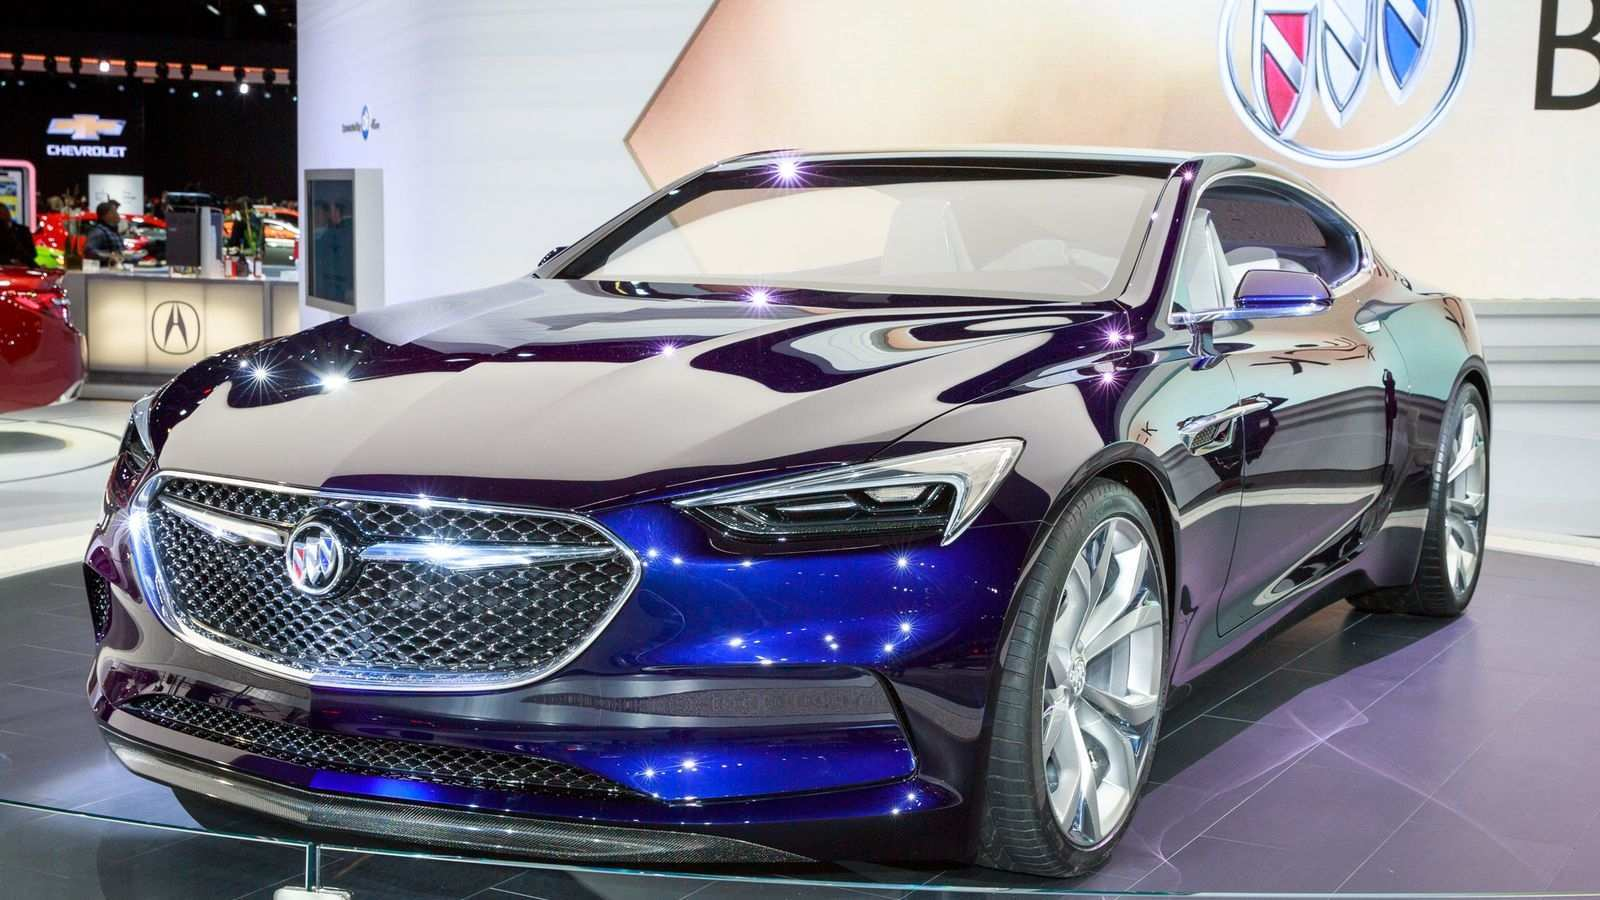 61 The Best 2019 Buick Avista Redesign And Review